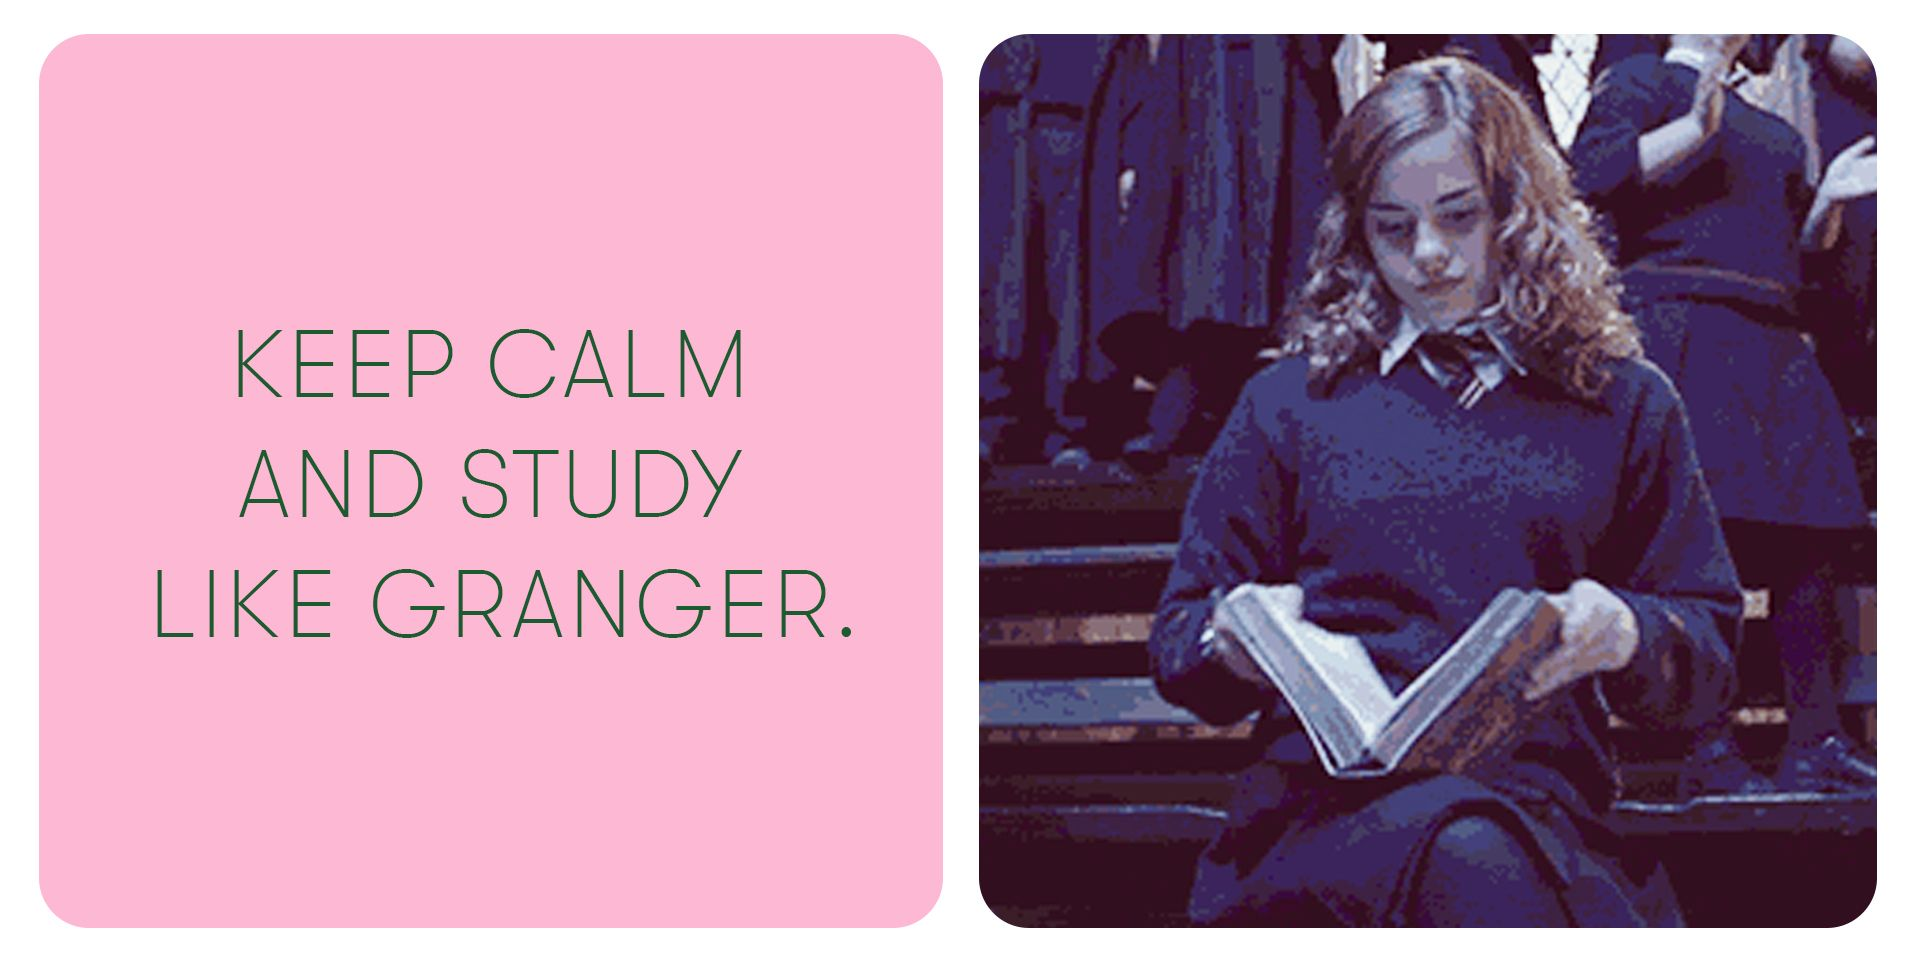 25 Best Exam Quotes For Finals Week 2018 - Motivational ...